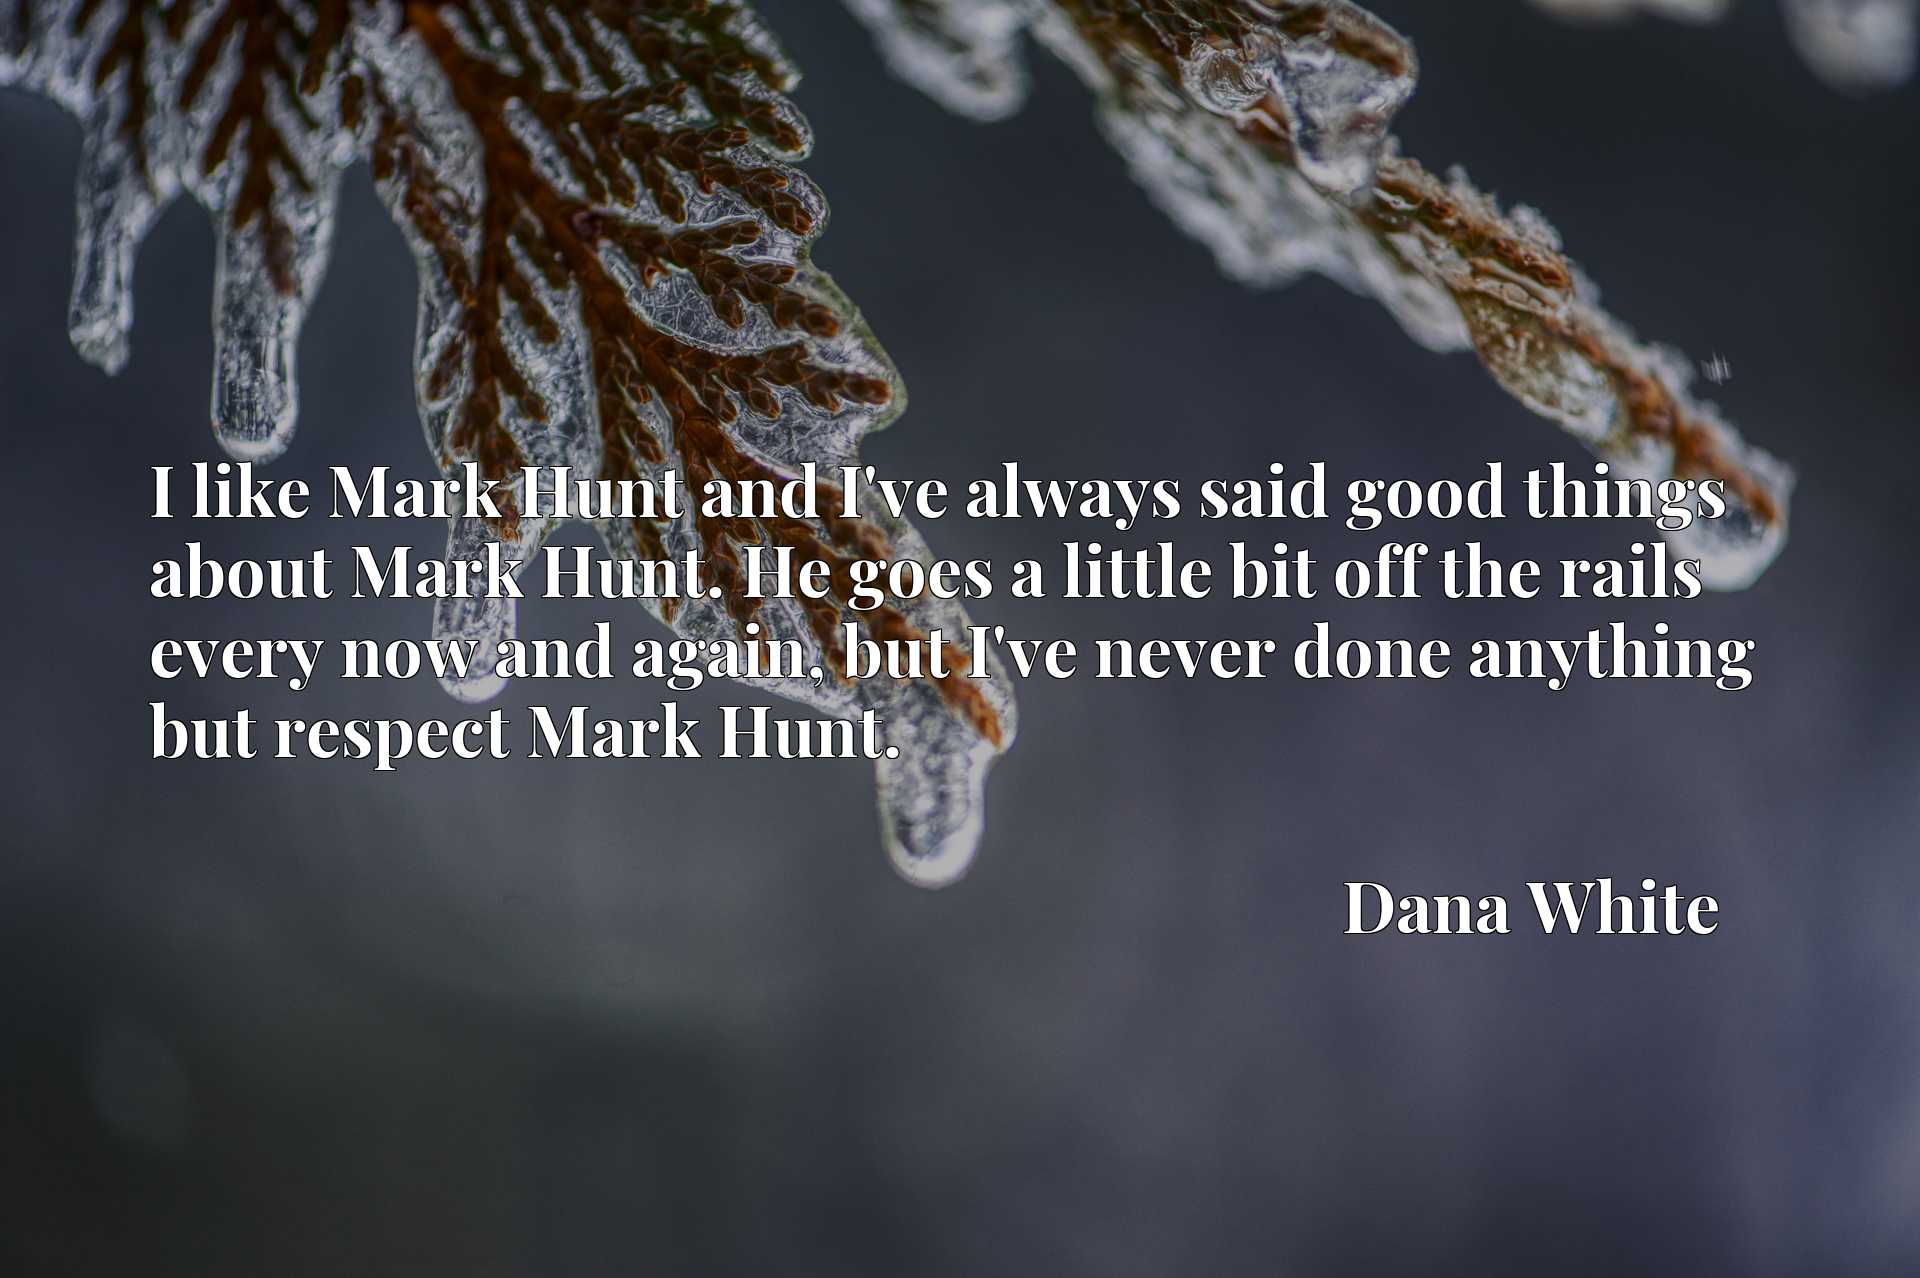 I like Mark Hunt and I've always said good things about Mark Hunt. He goes a little bit off the rails every now and again, but I've never done anything but respect Mark Hunt.